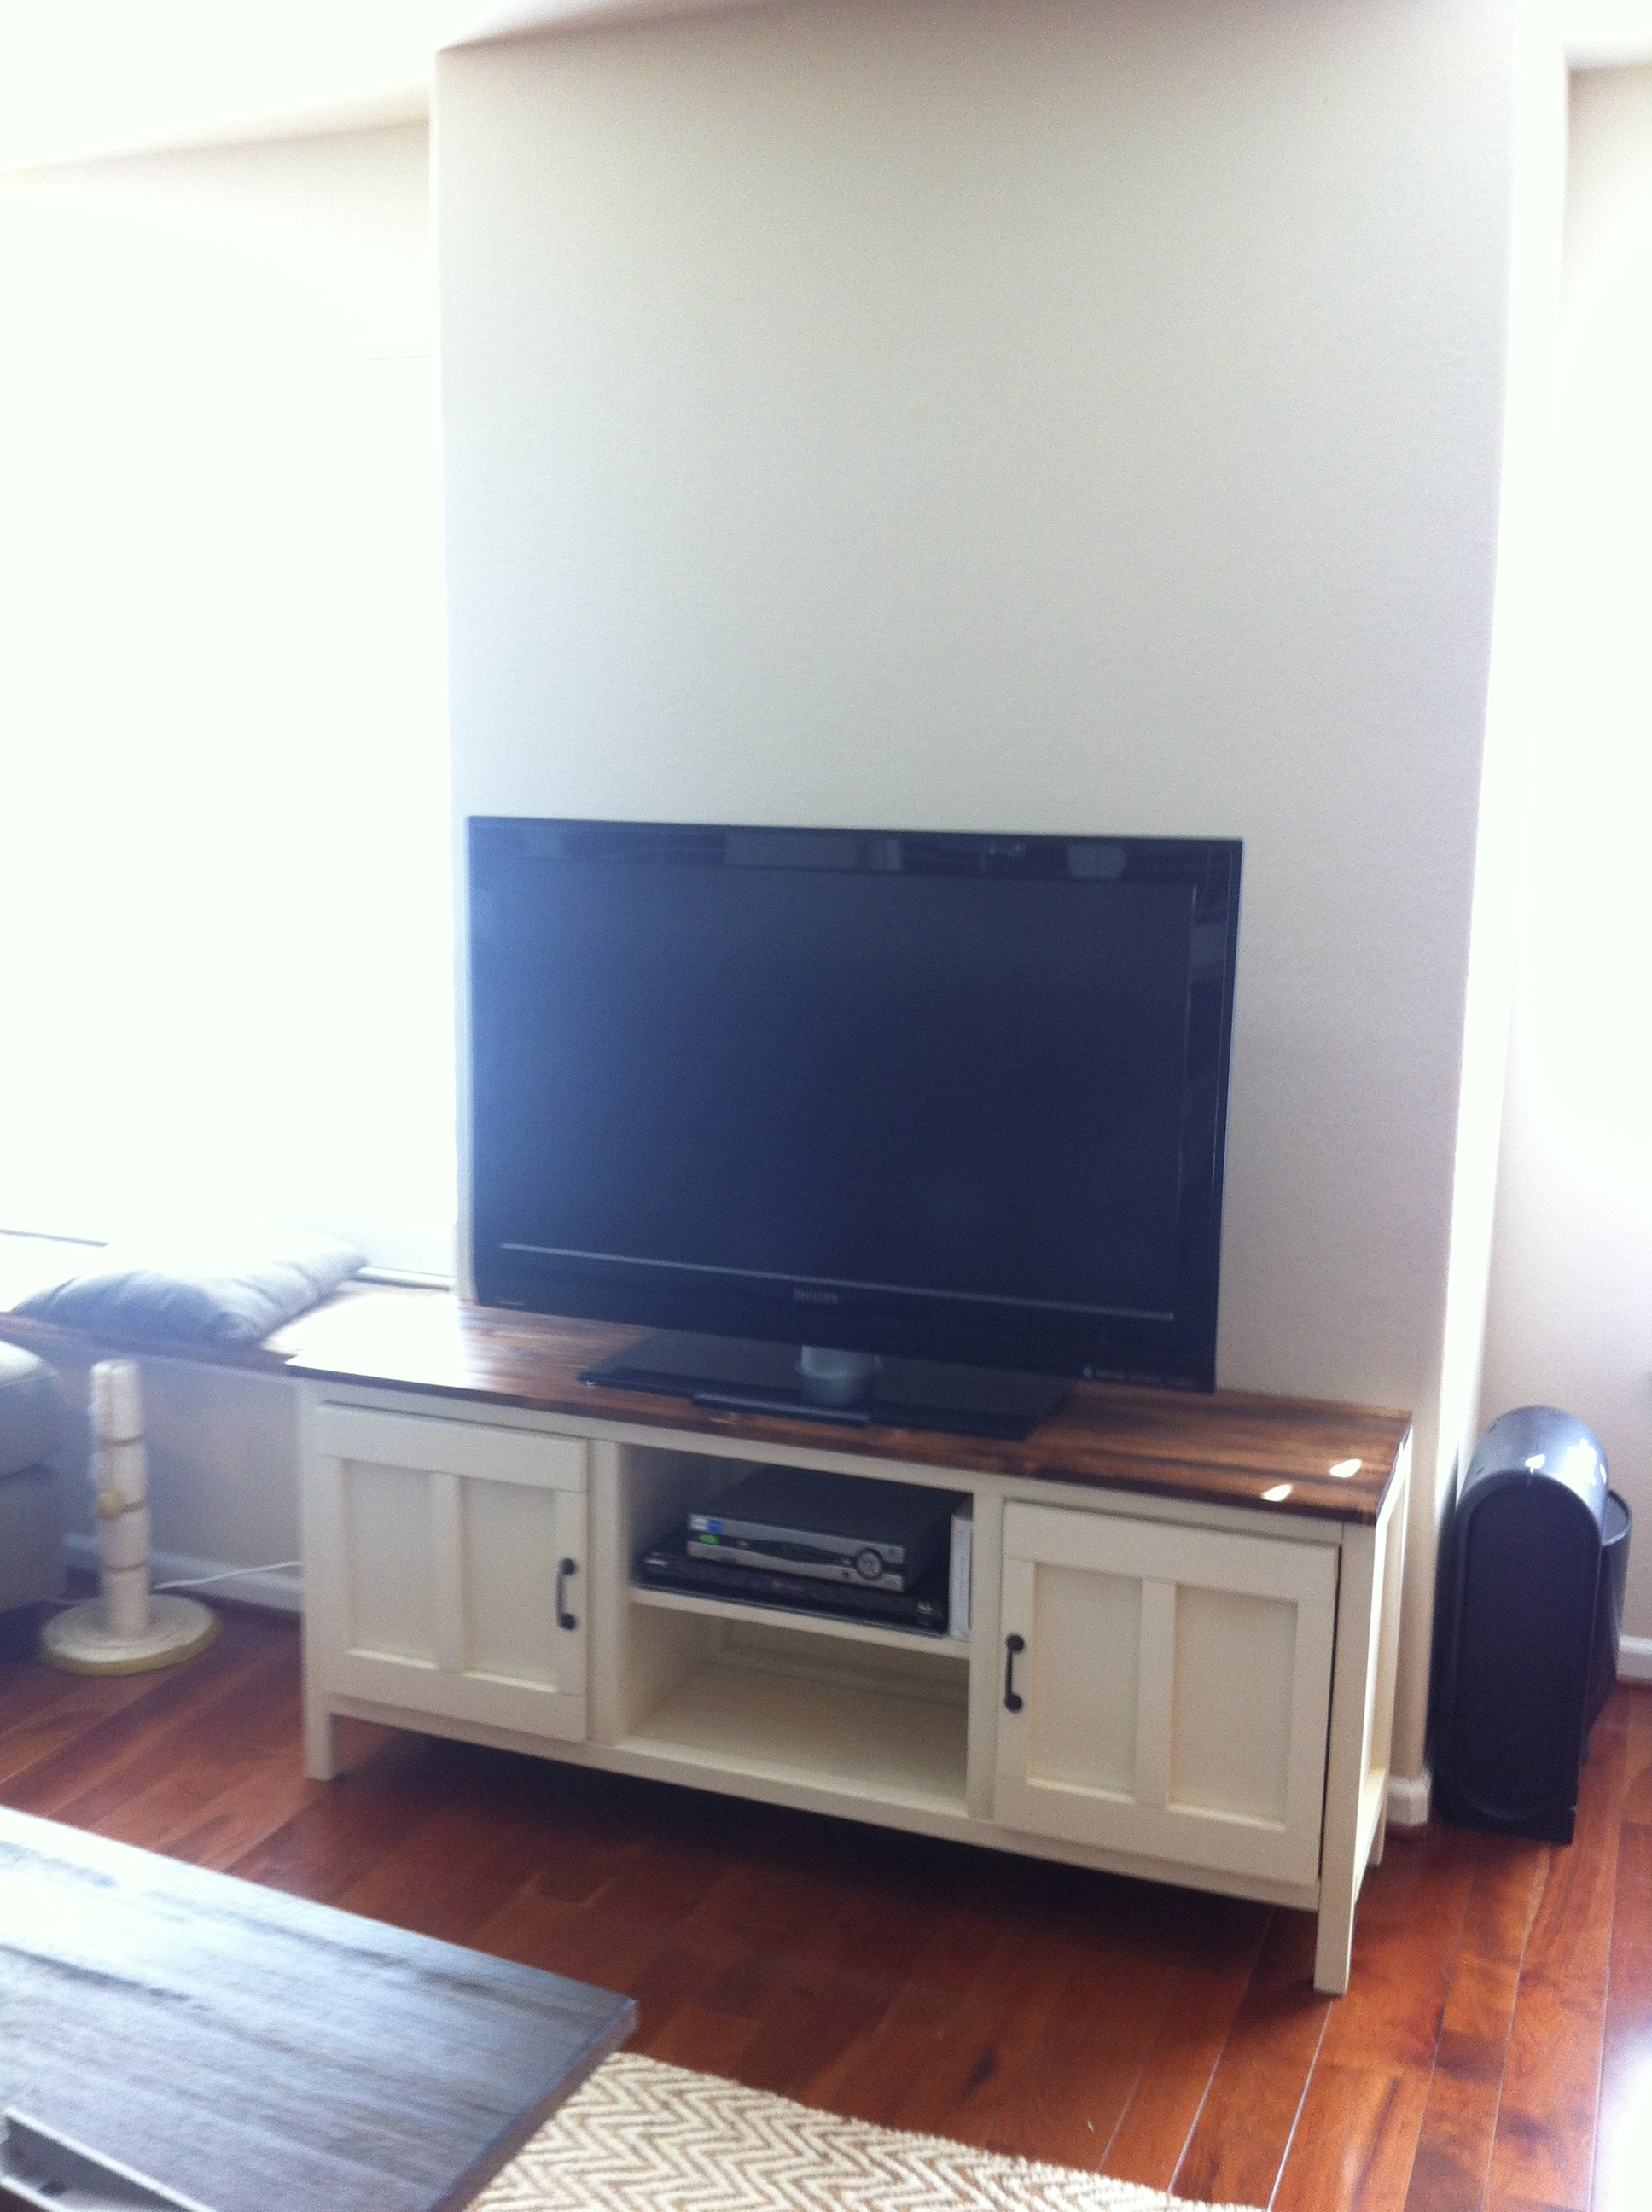 Ana white media console diy projects White media console